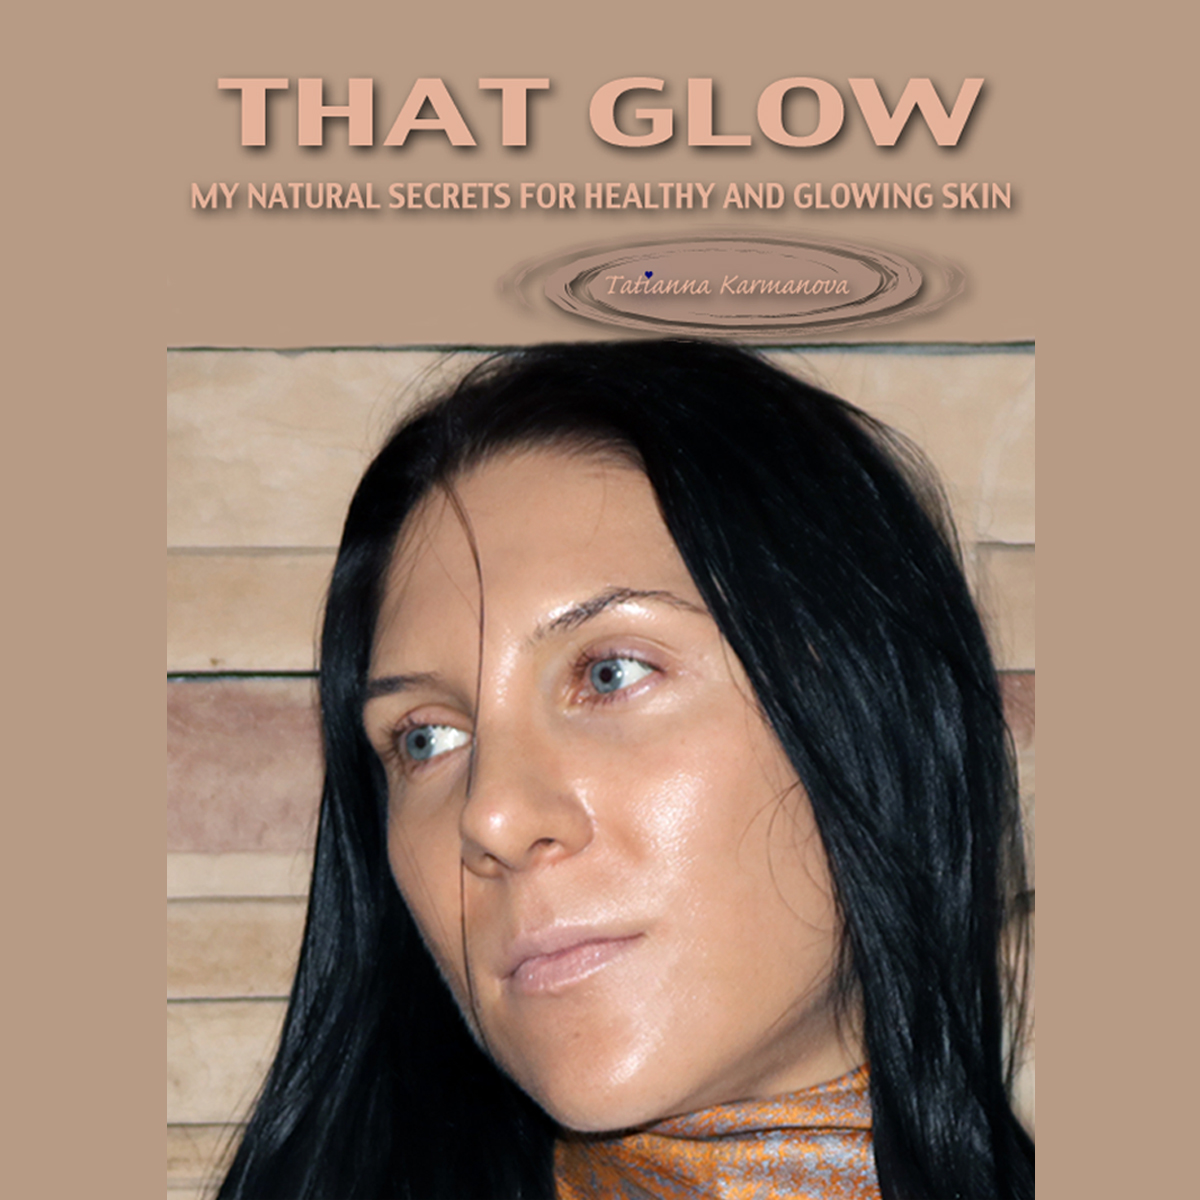 Glow Skin Care: THAT GLOW. My Natural Secrets To Healthy And Glowing Skin